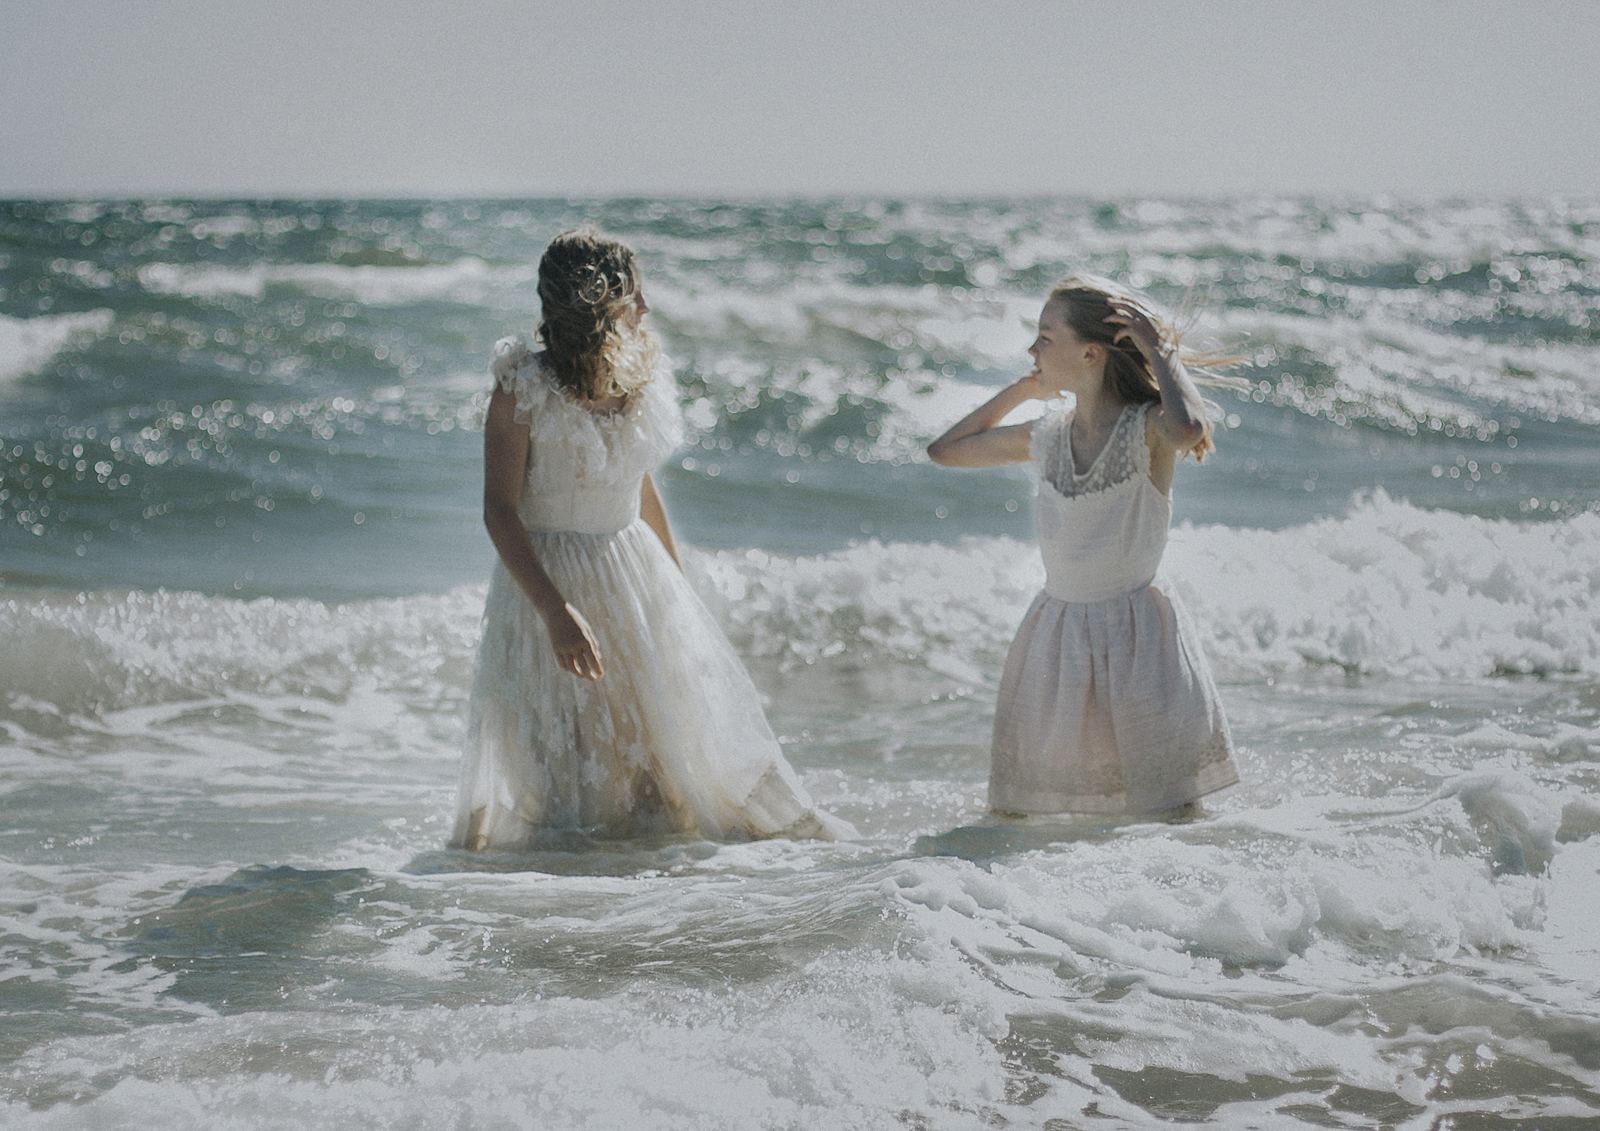 Young Tween girls playing in the water down at the beach